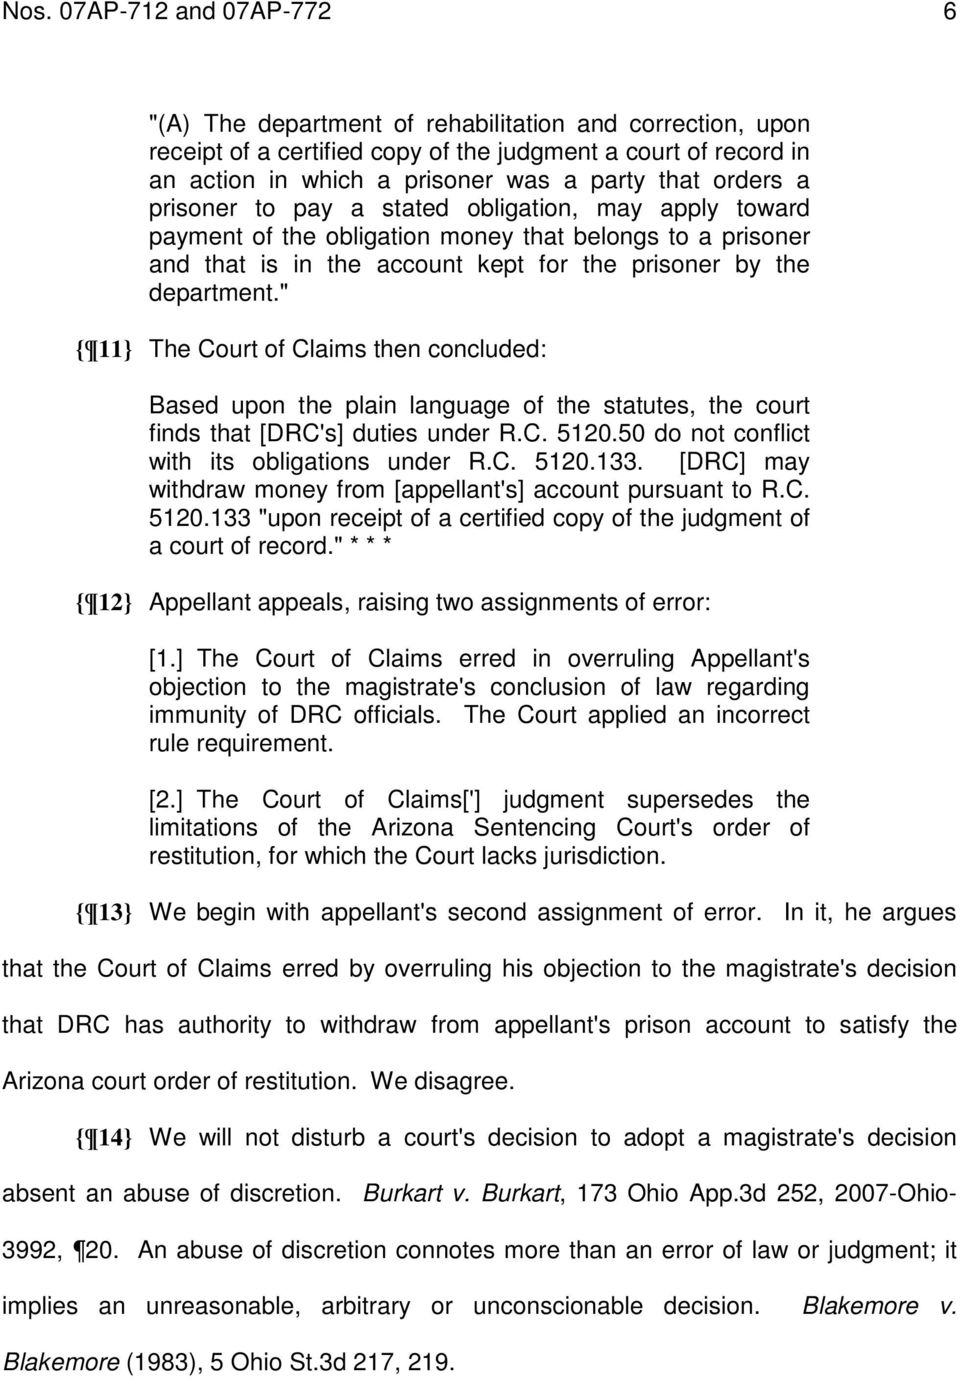 """ { 11} The Court of Claims then concluded: Based upon the plain language of the statutes, the court finds that [DRC's] duties under R.C. 5120.50 do not conflict with its obligations under R.C. 5120.133."